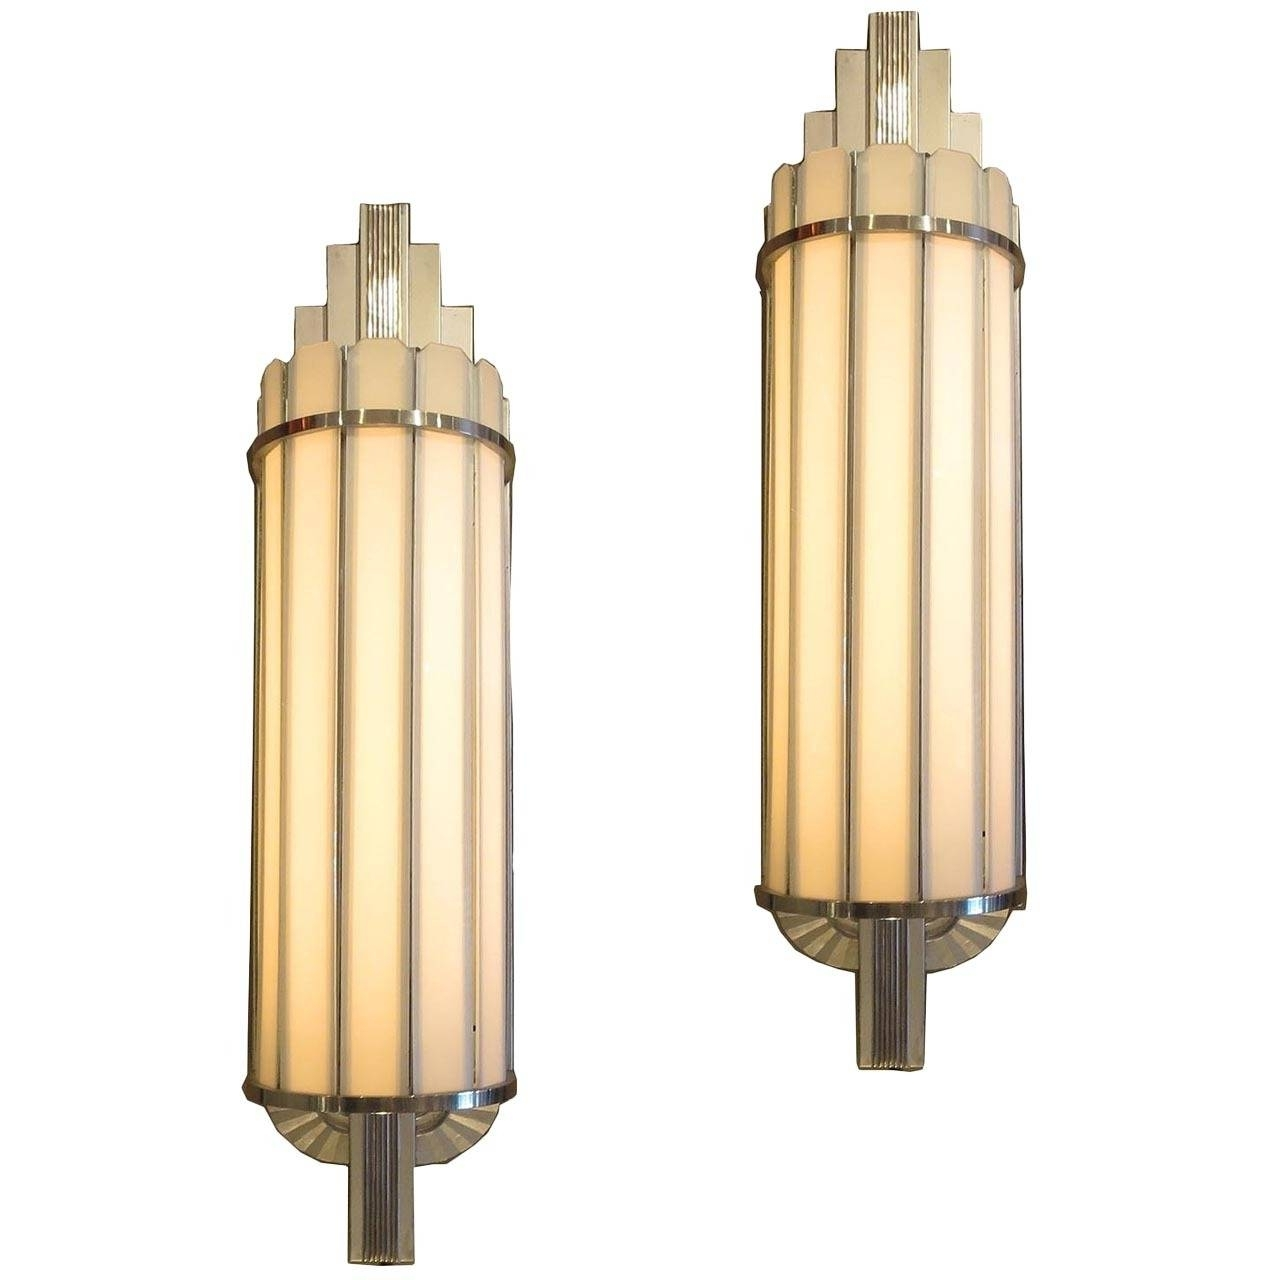 Explore Gallery of Art Deco Wall Sconces (Showing 1 of 20 Photos)